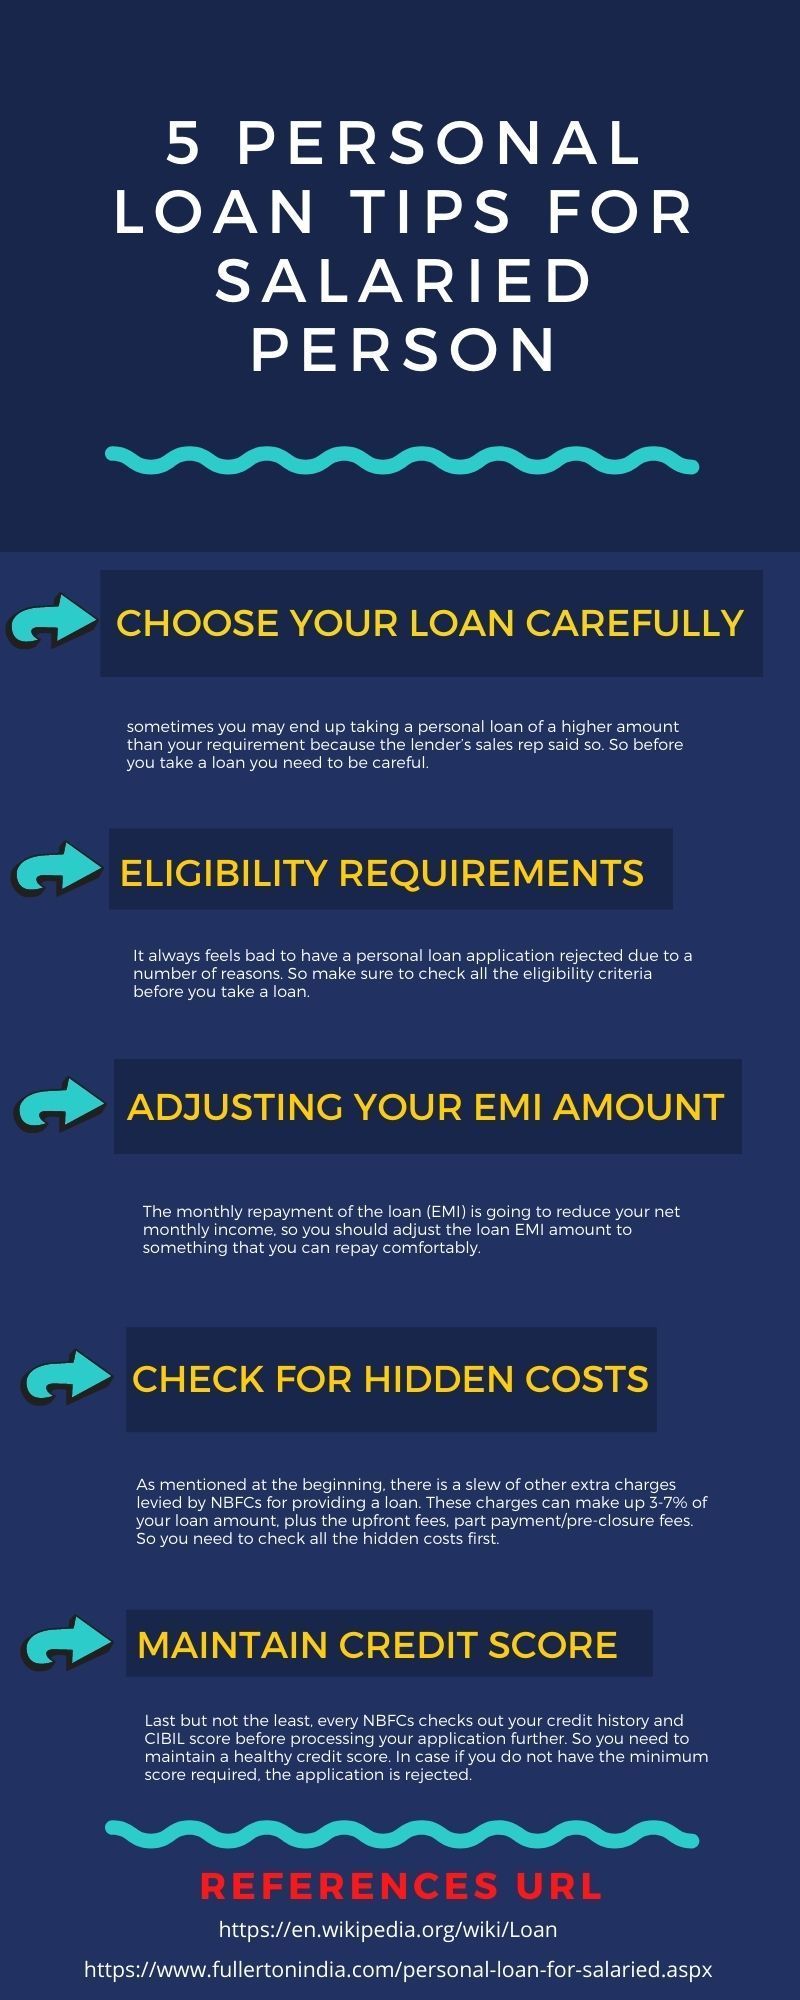 How To Get Personal Loans For Credit Score Under 600 Credit Score In 2020 Personal Loans Bad Credit Score Credit Score